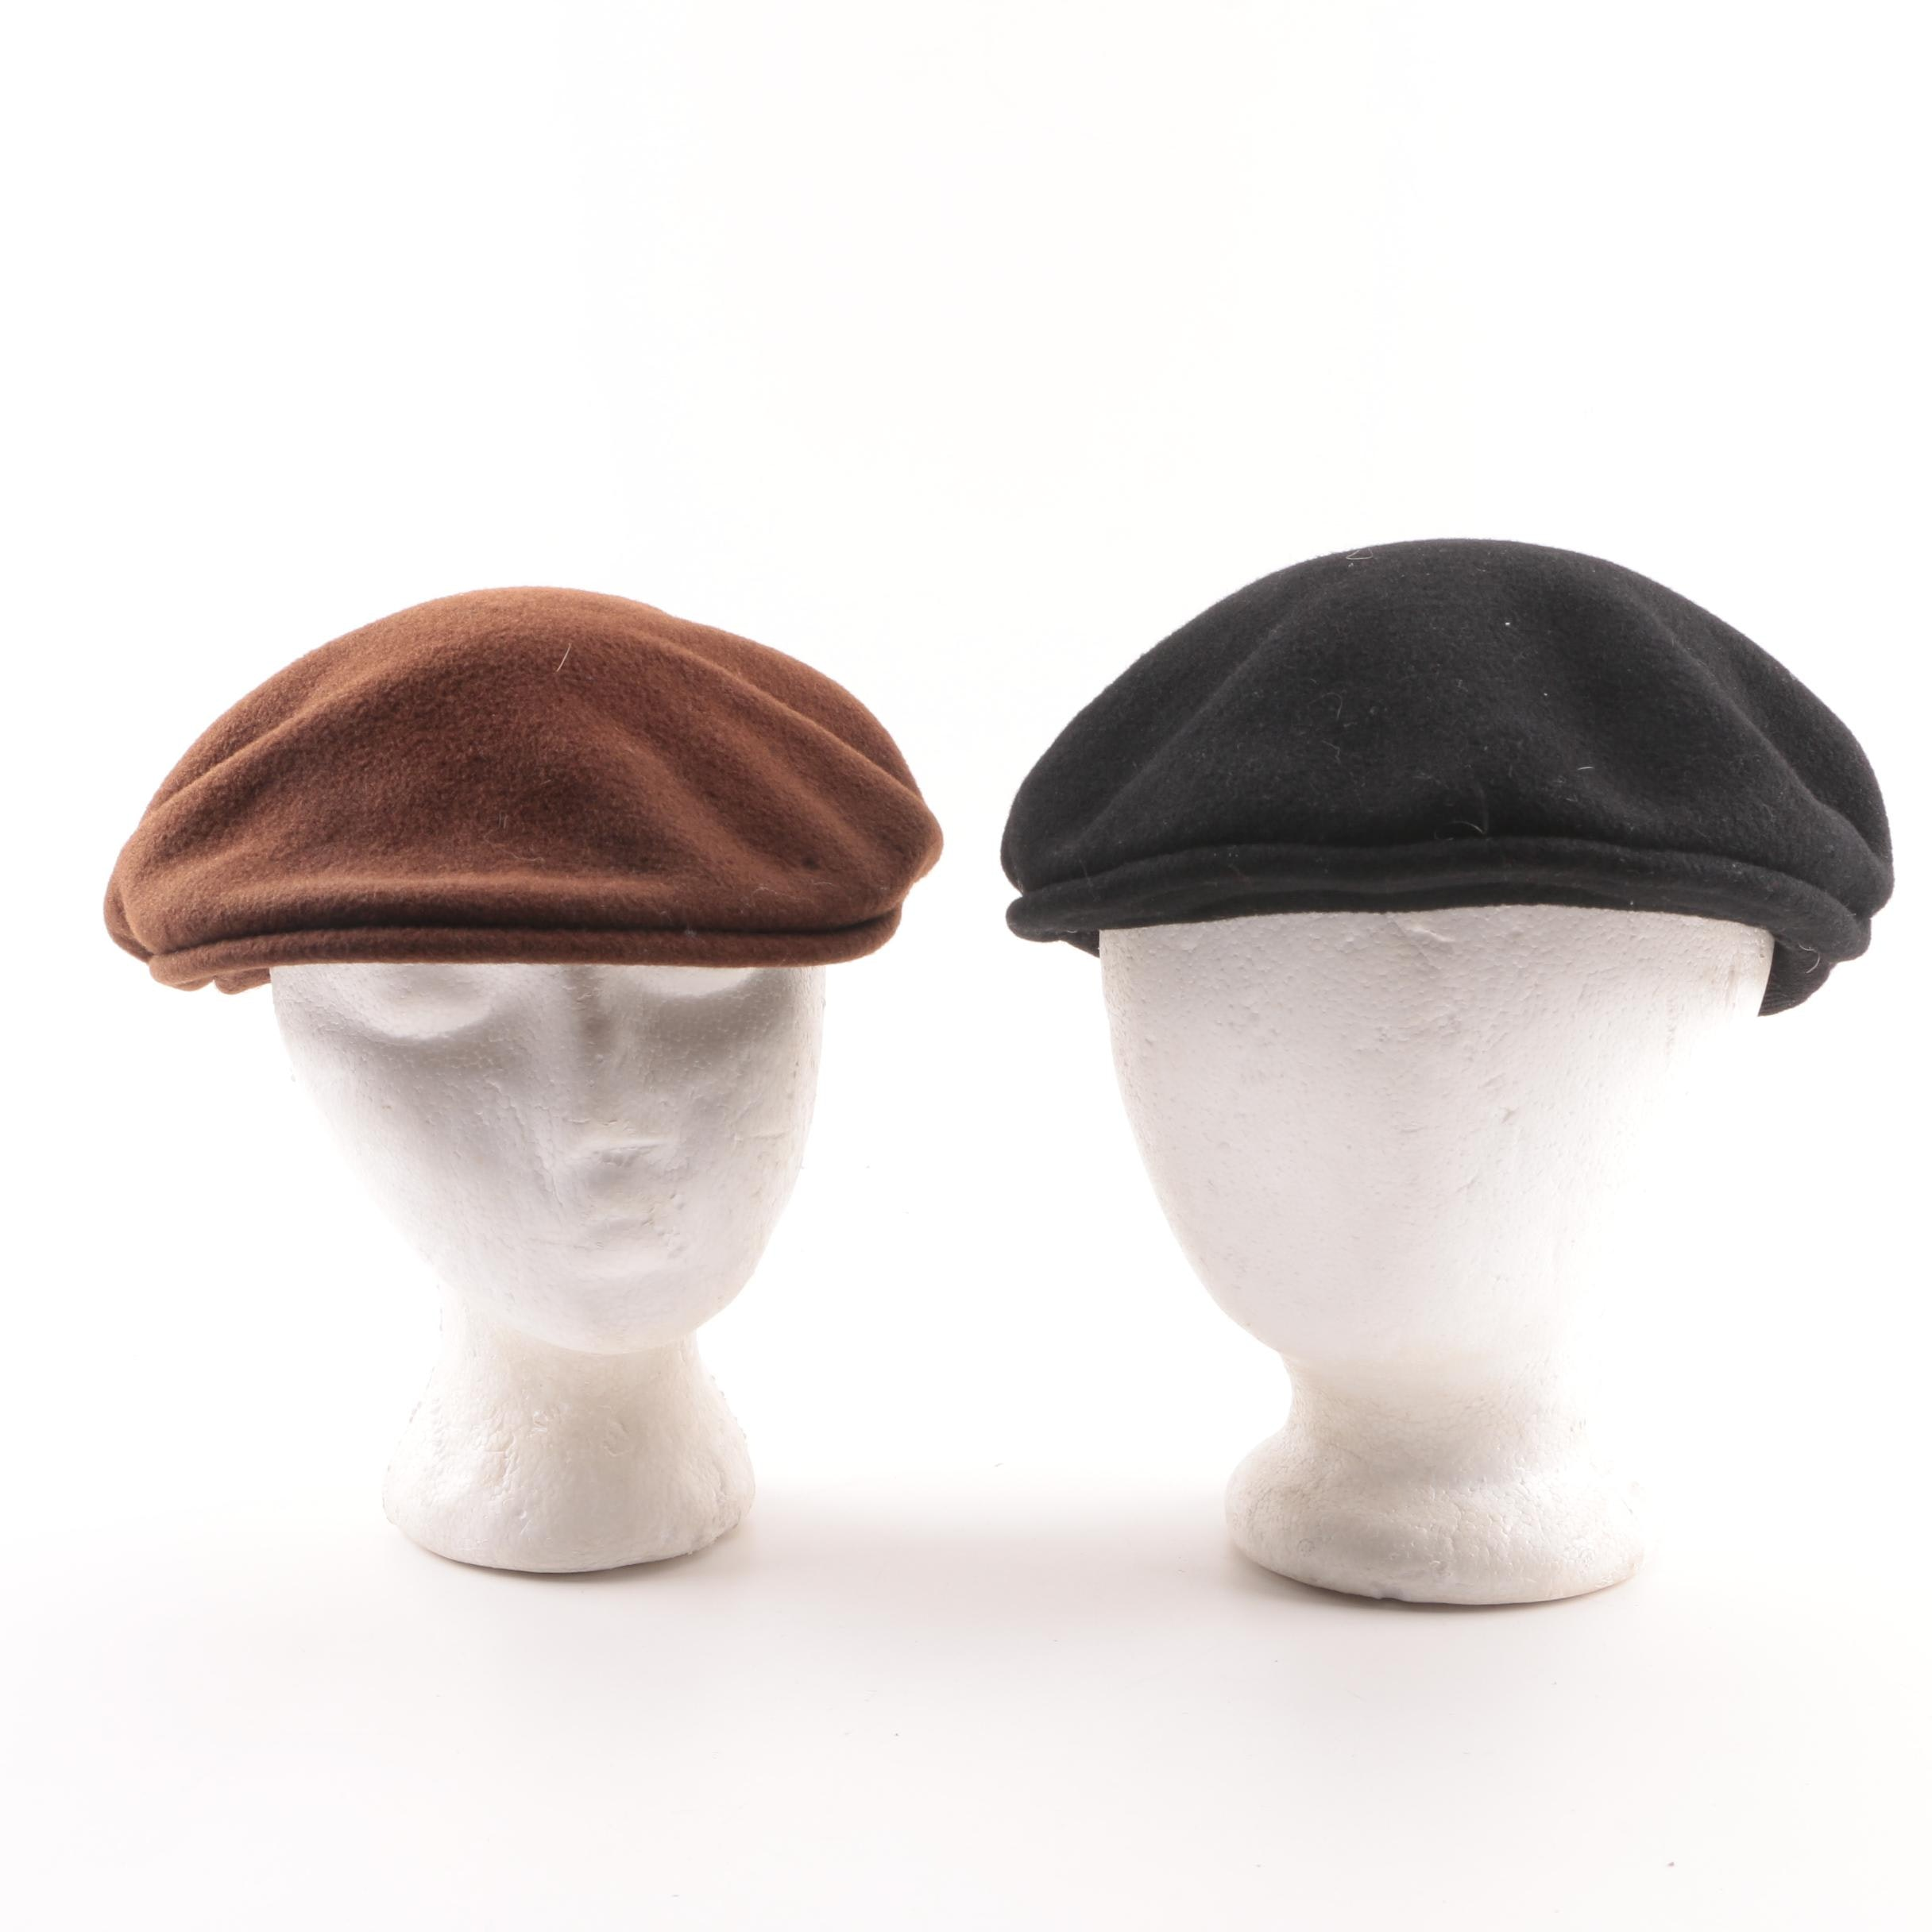 Men's Vintage Kangol Brown and Black Felted Wool Flat Caps